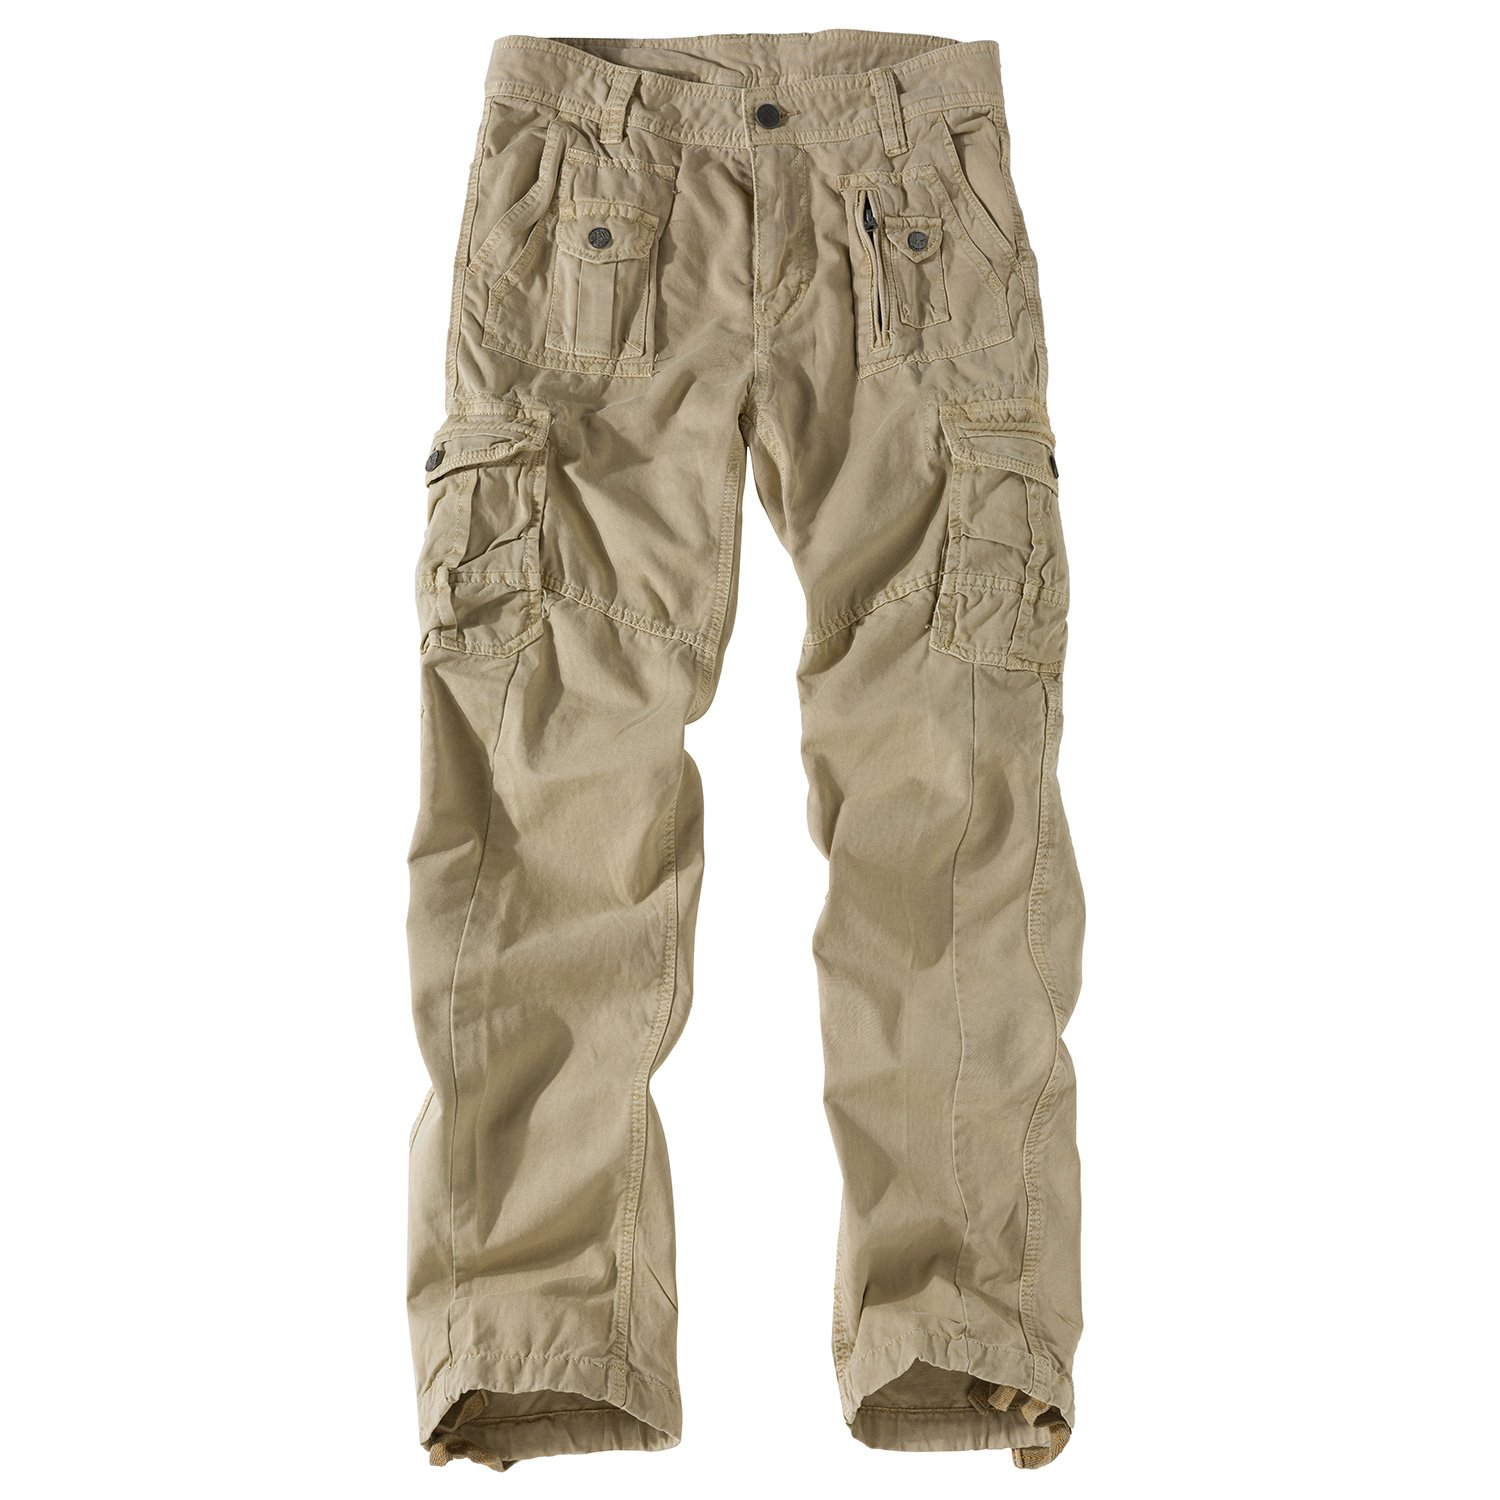 Eaglide Mens Relaxed Fit Cotton Casual Pant, Men's Military Outdoor Pockets Cargo Pants (Khaki, 36W × 32L)